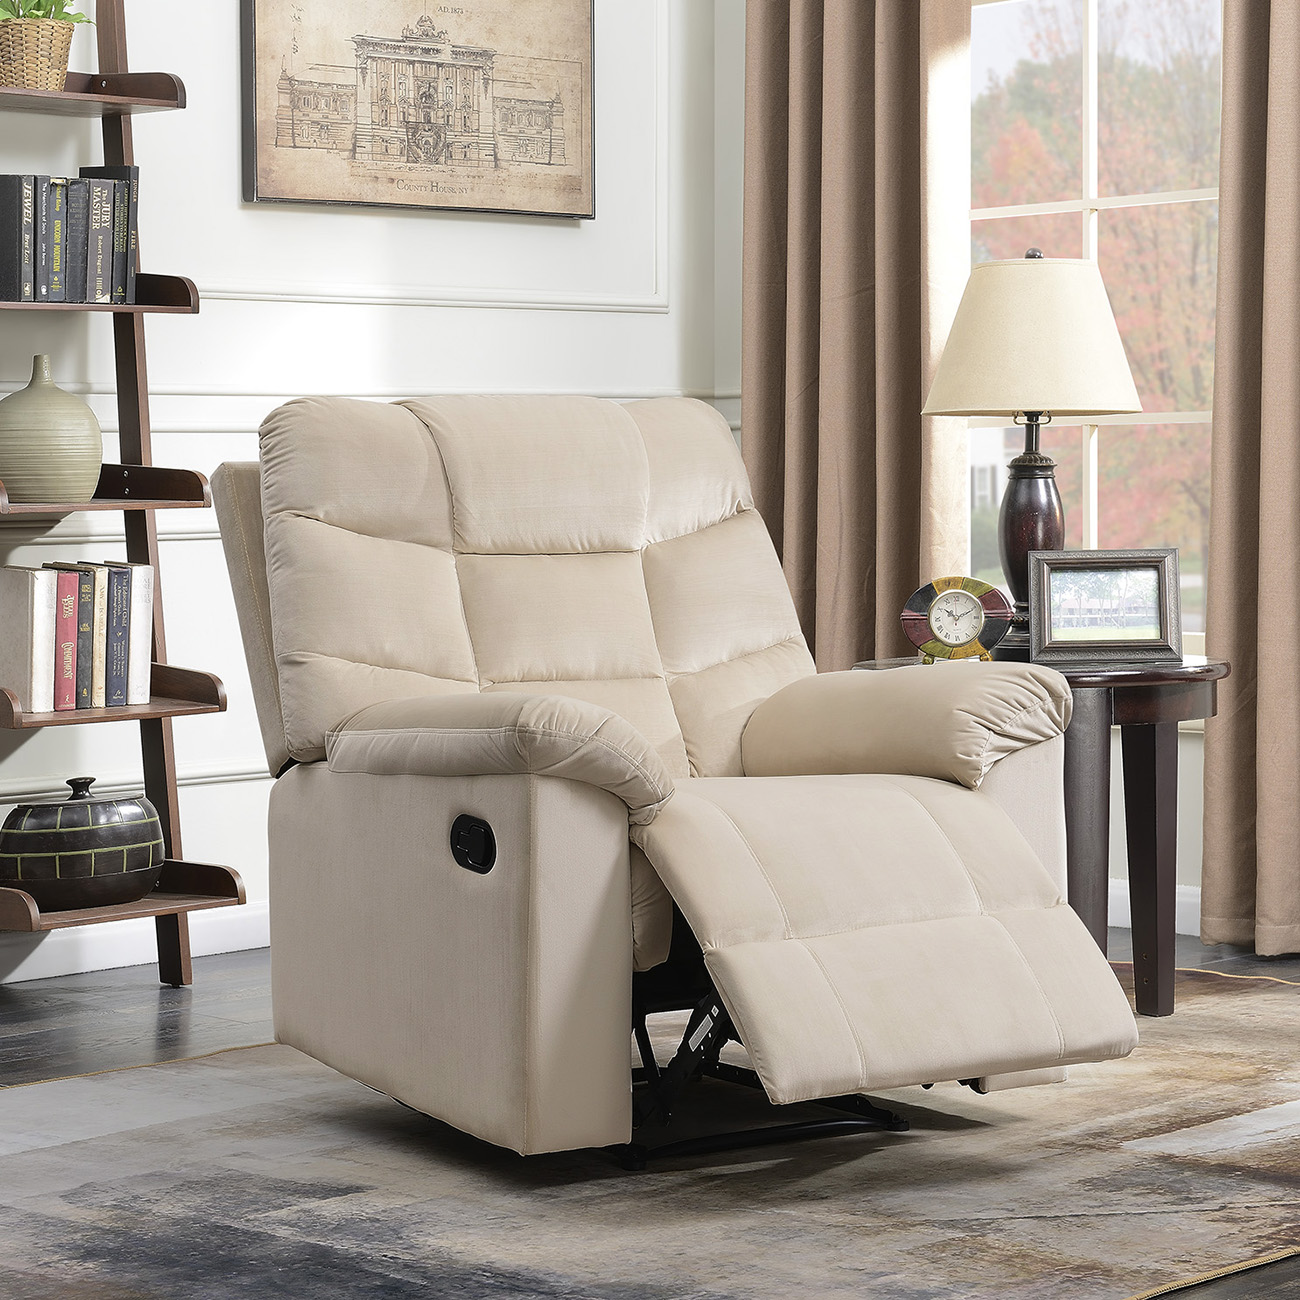 Belleze High Back Extra Overstuffed Contemporary Full Recliner Microfiber Lounge Padded Armrest Backrest Chair, Beige